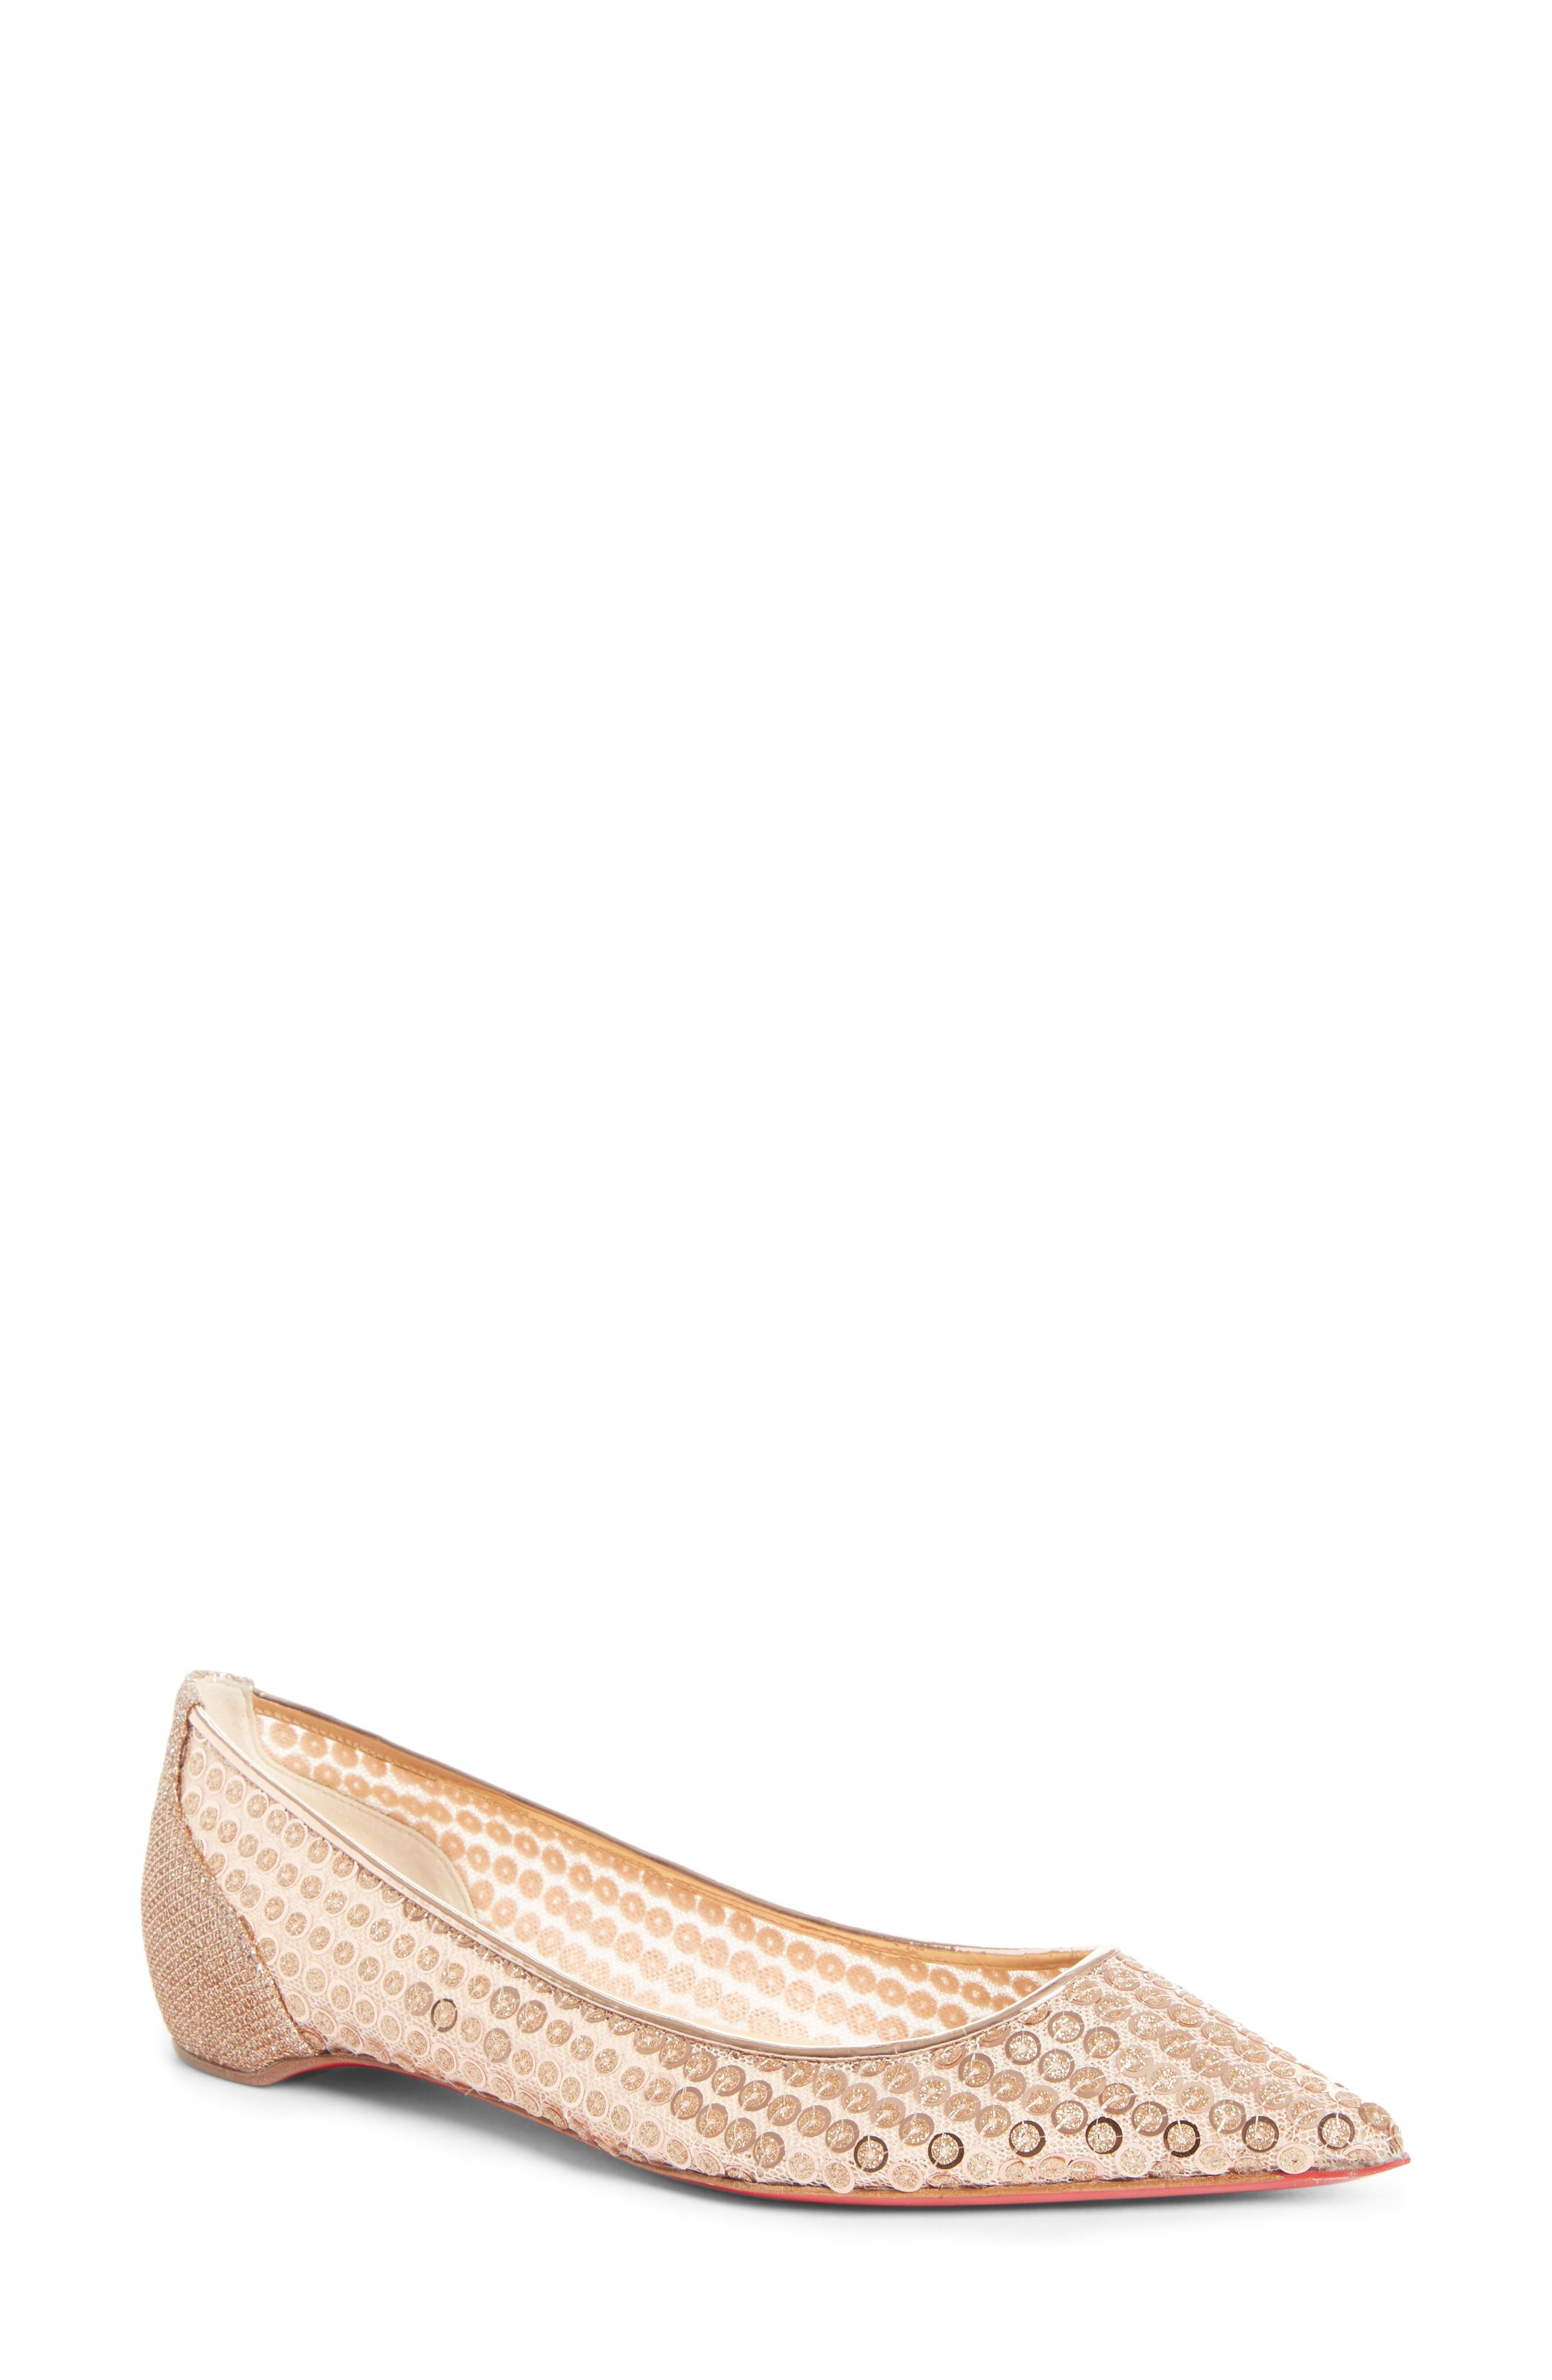 9be8ef69d8 Christian Louboutin Lace Sequined Red Sole Ballet Flats In Nude ...